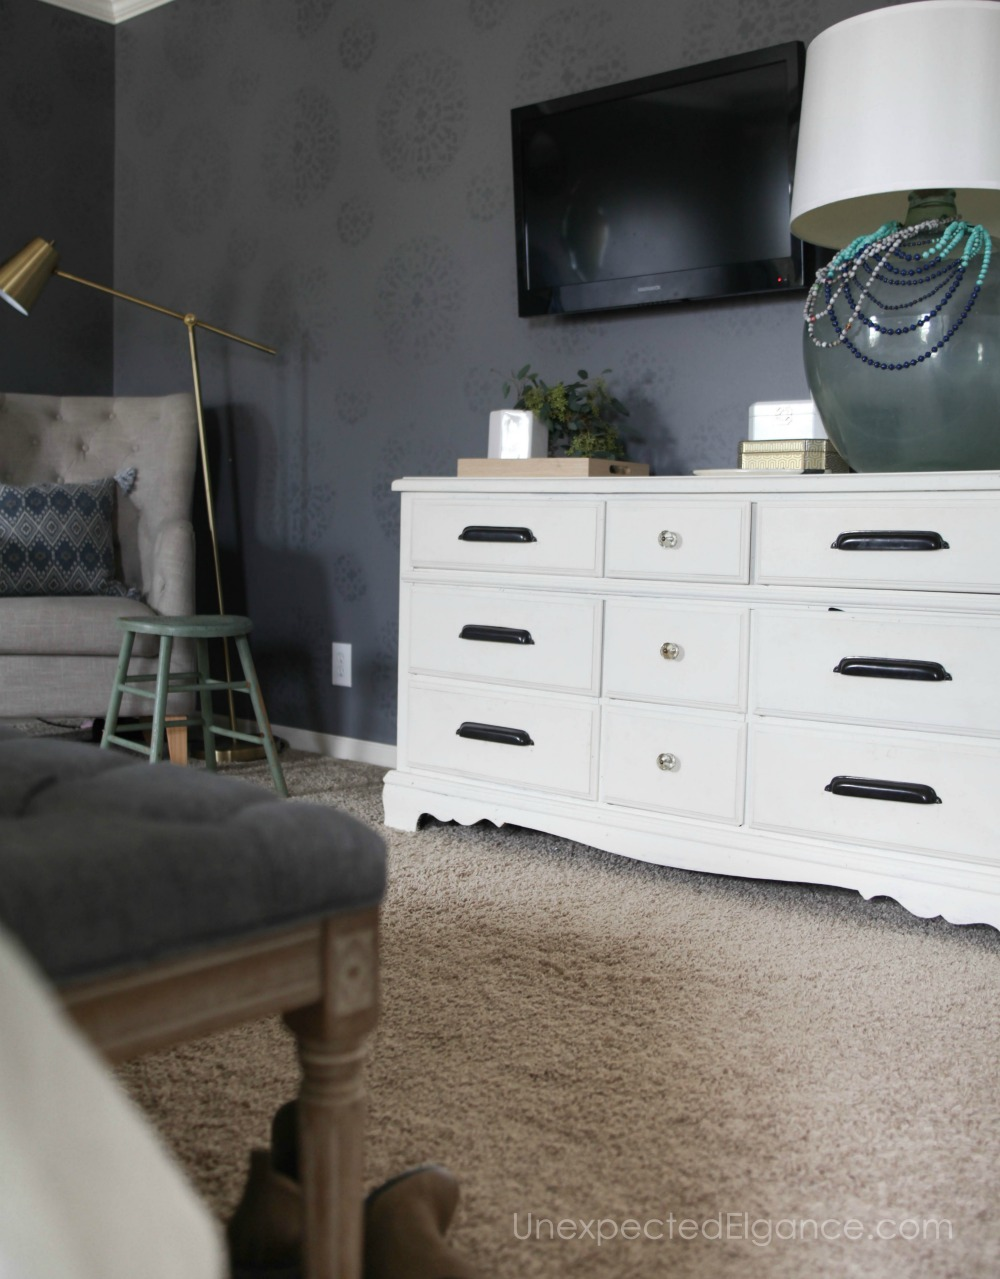 Check out this master bedroom refresh! By using things you already have and cleaning out the clutter, you can have a new space without spending any money!